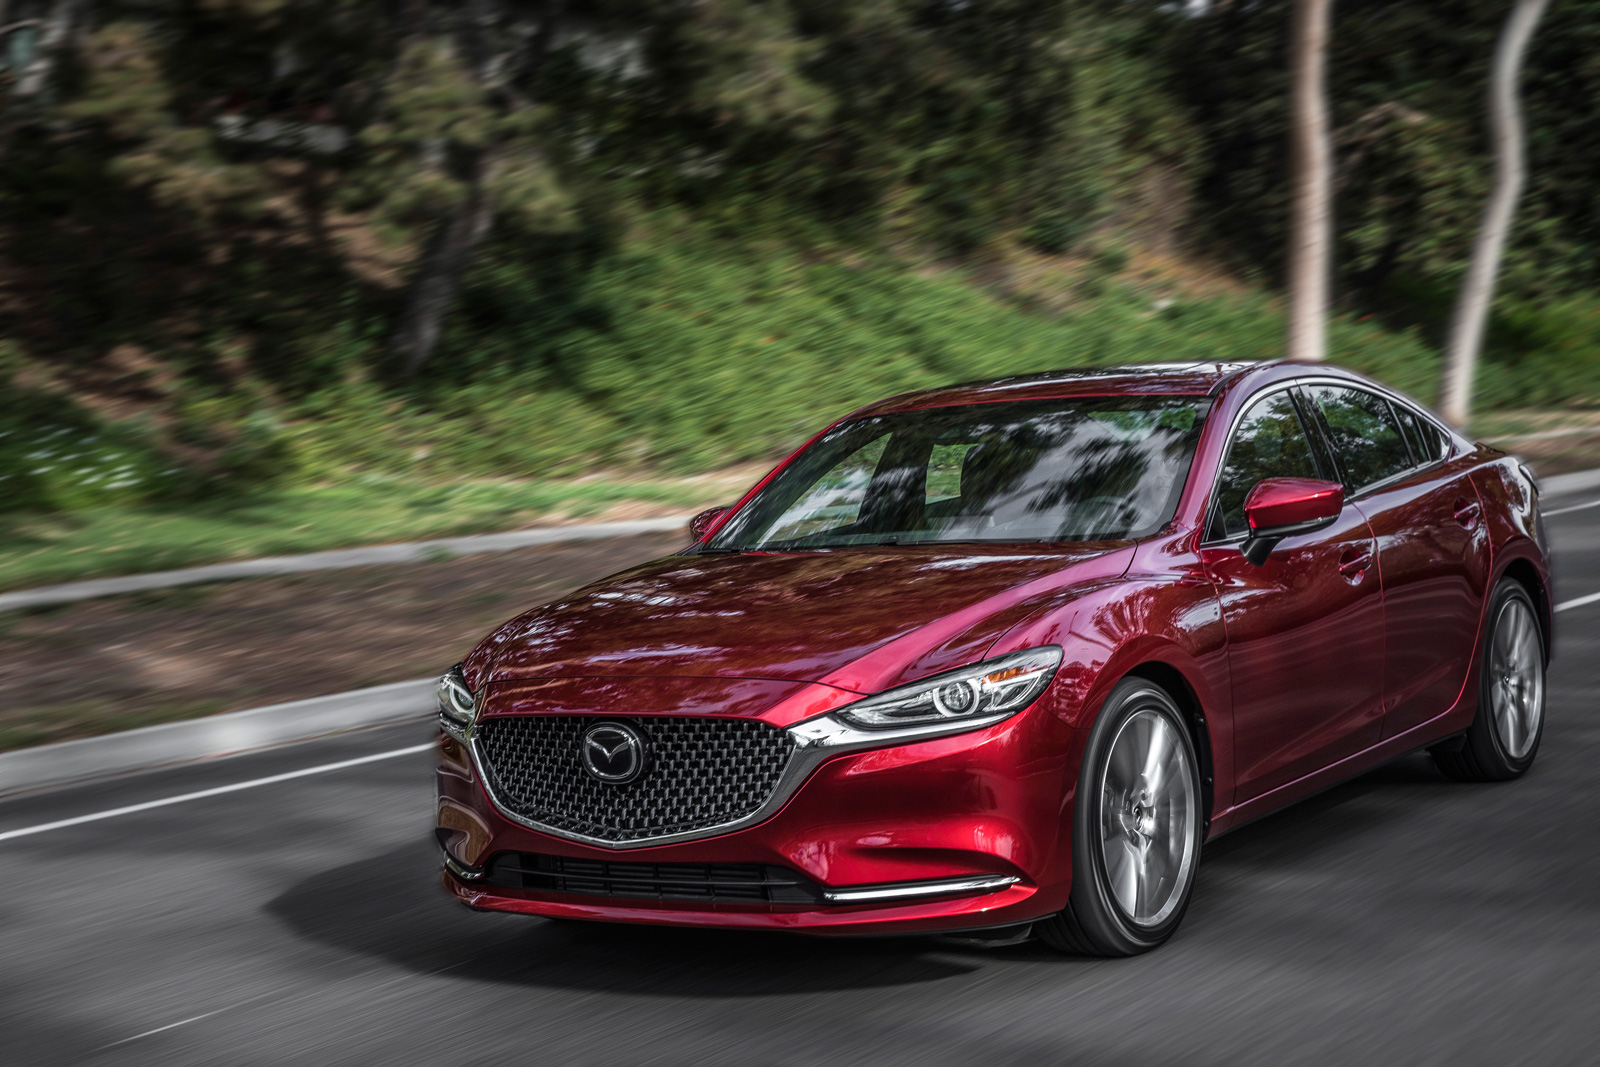 2018 Mazda6 Pricing Announced Ahead Of April Sale Date Autoguide